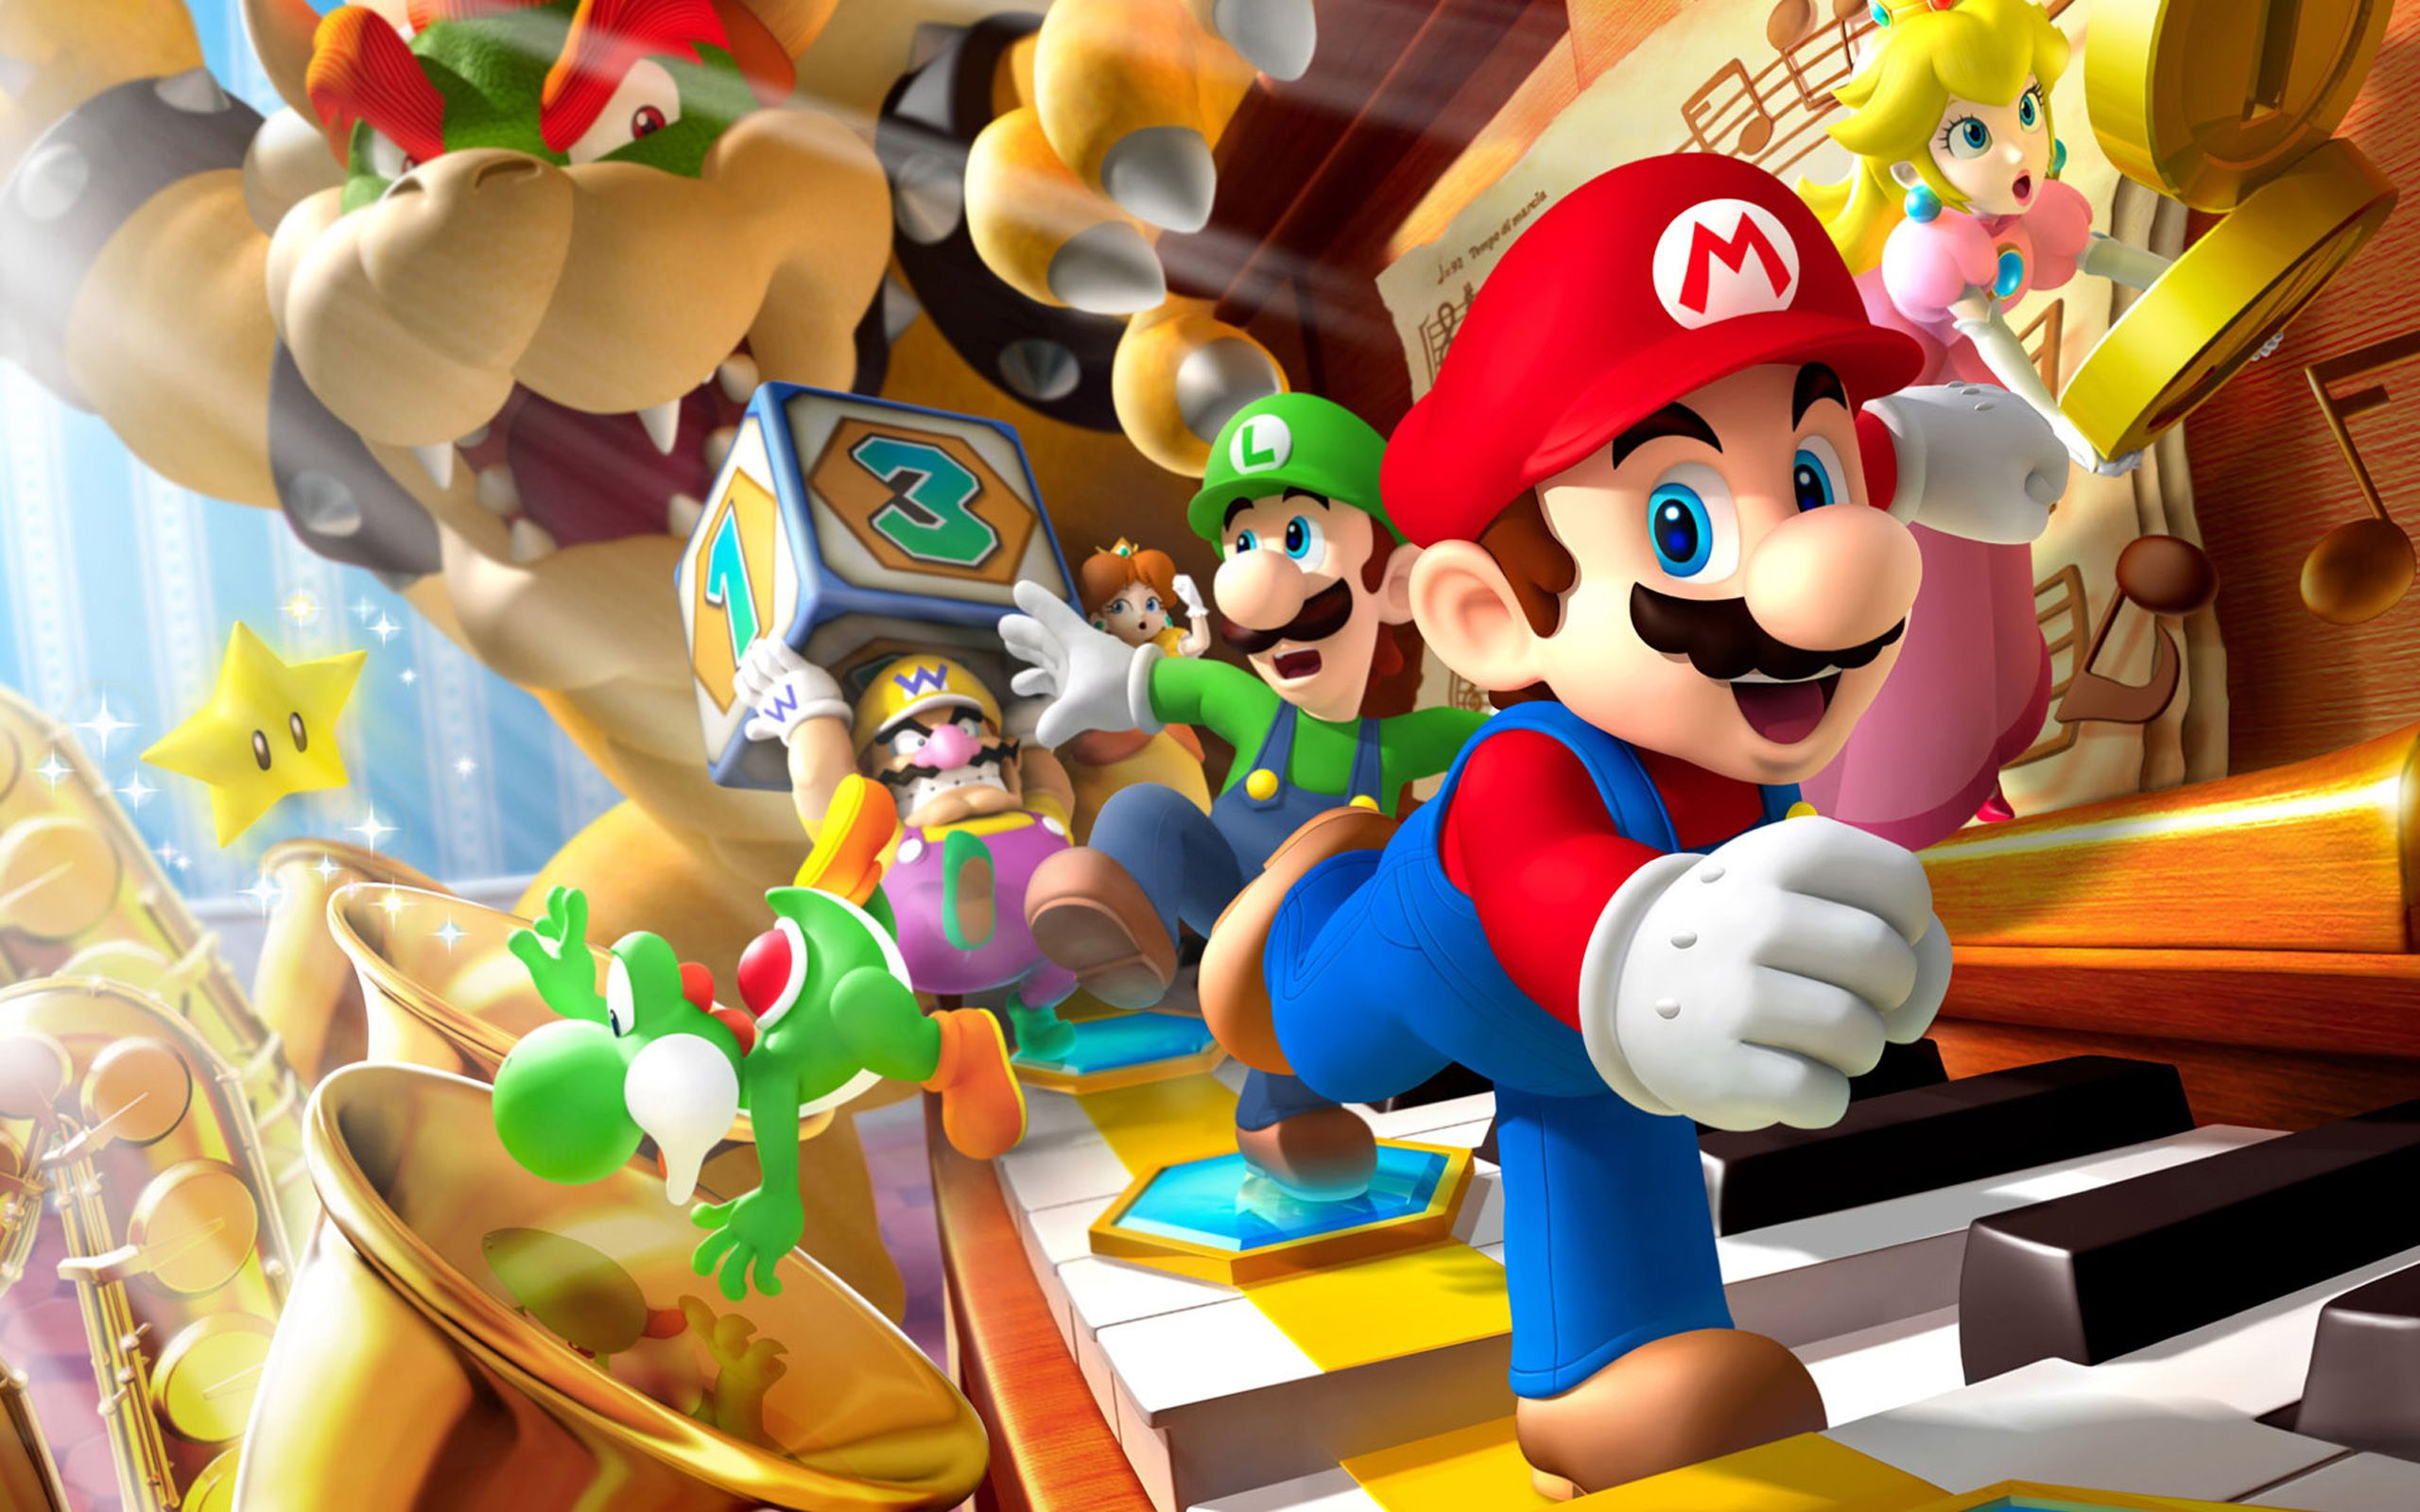 Super mario luigi wallpaper all wallpapers pinterest super mario luigi wallpaper altavistaventures Gallery